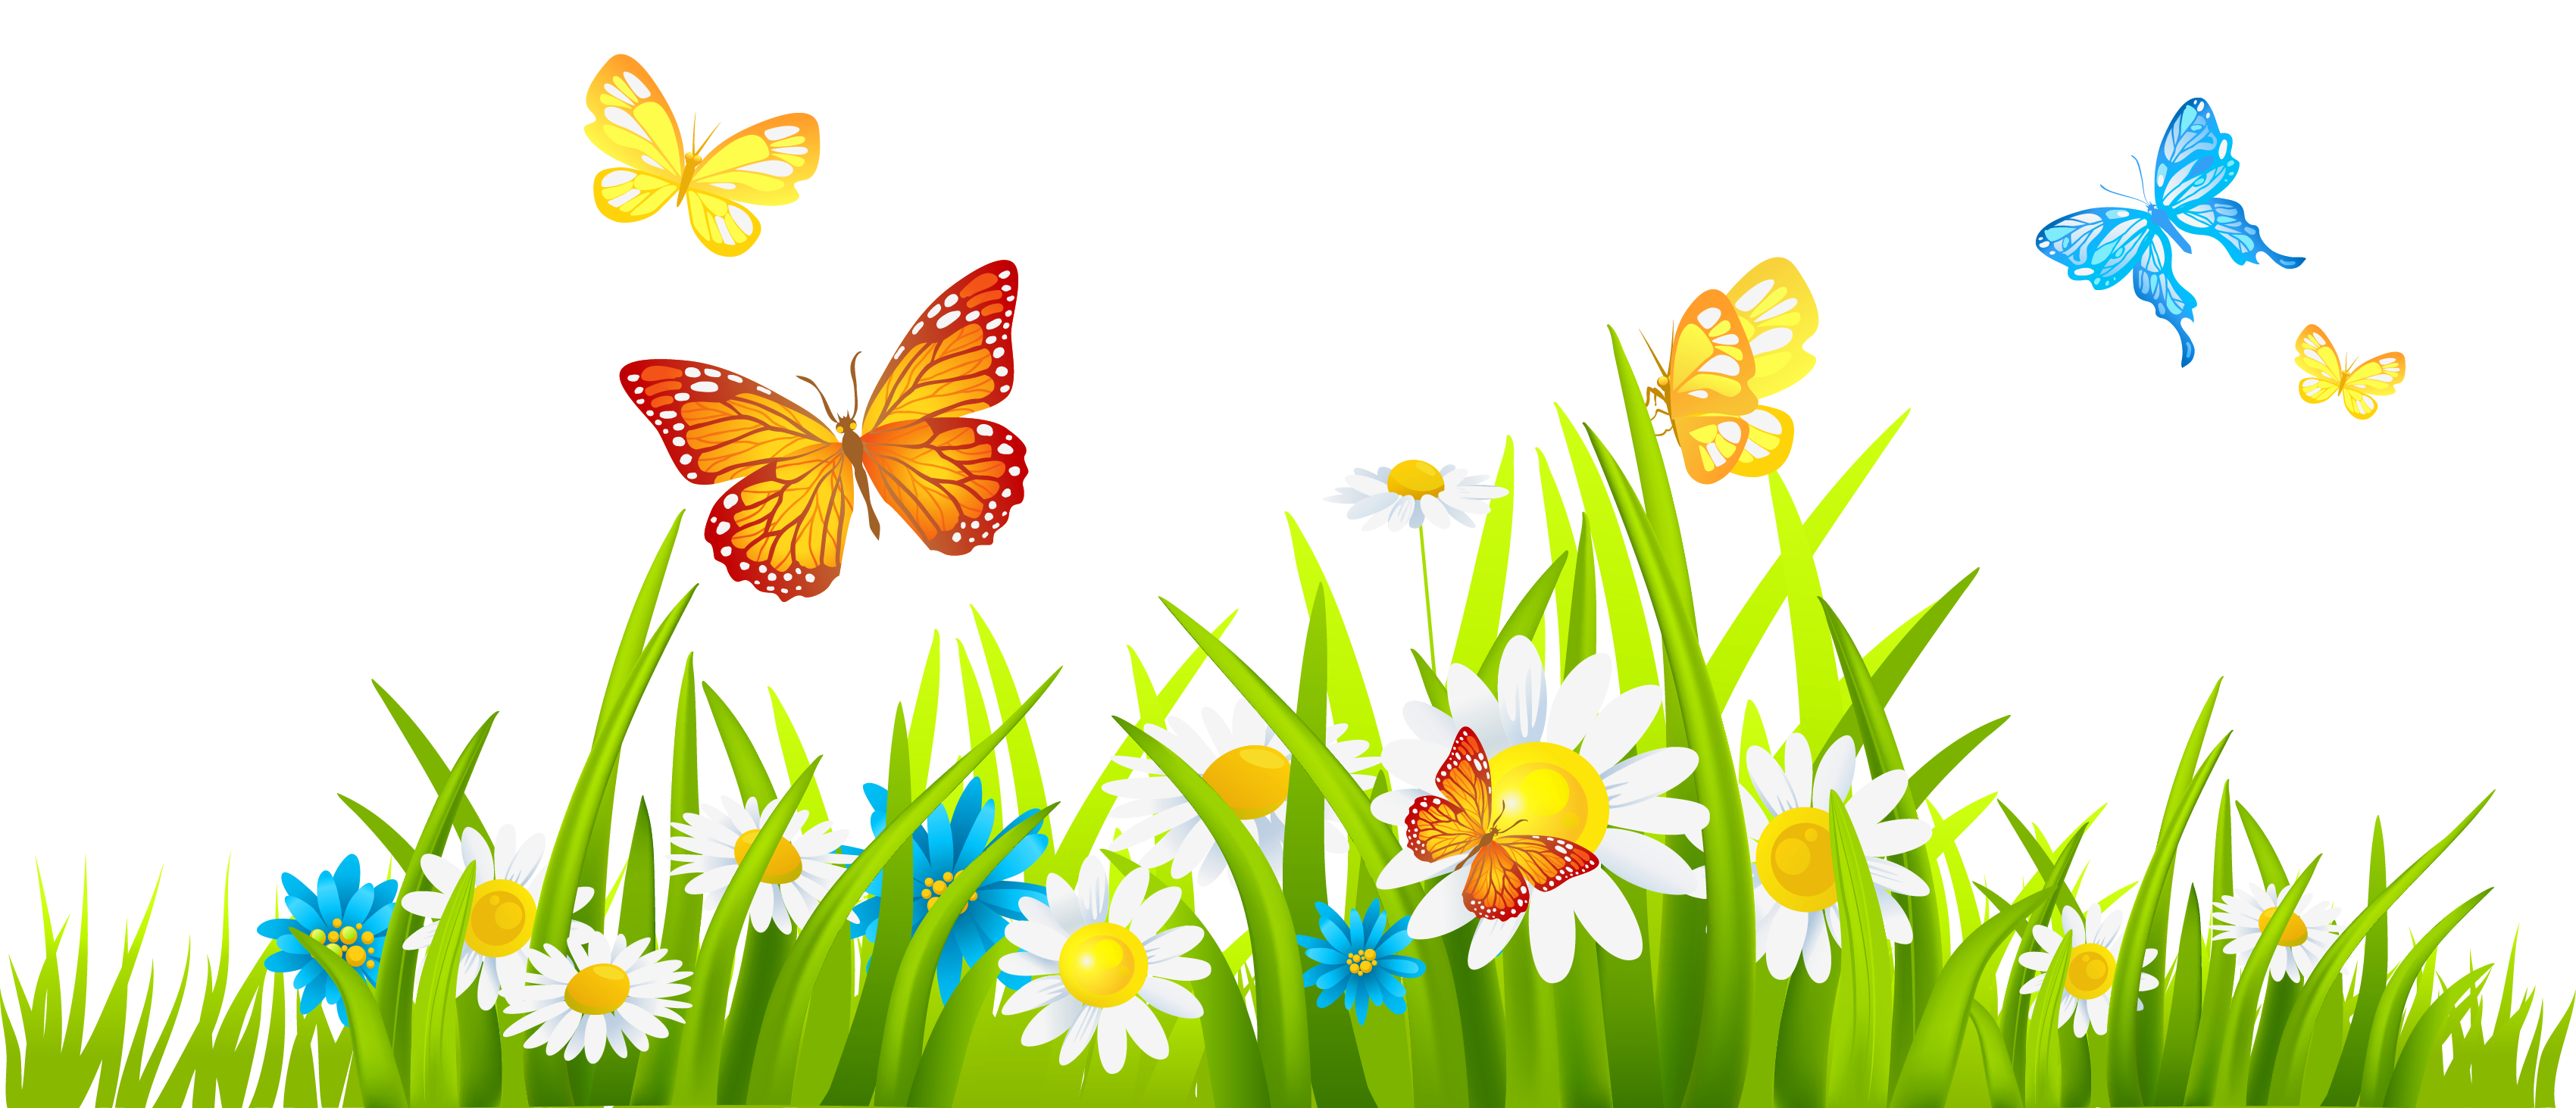 Cartoon flowers png. Grass ground with and